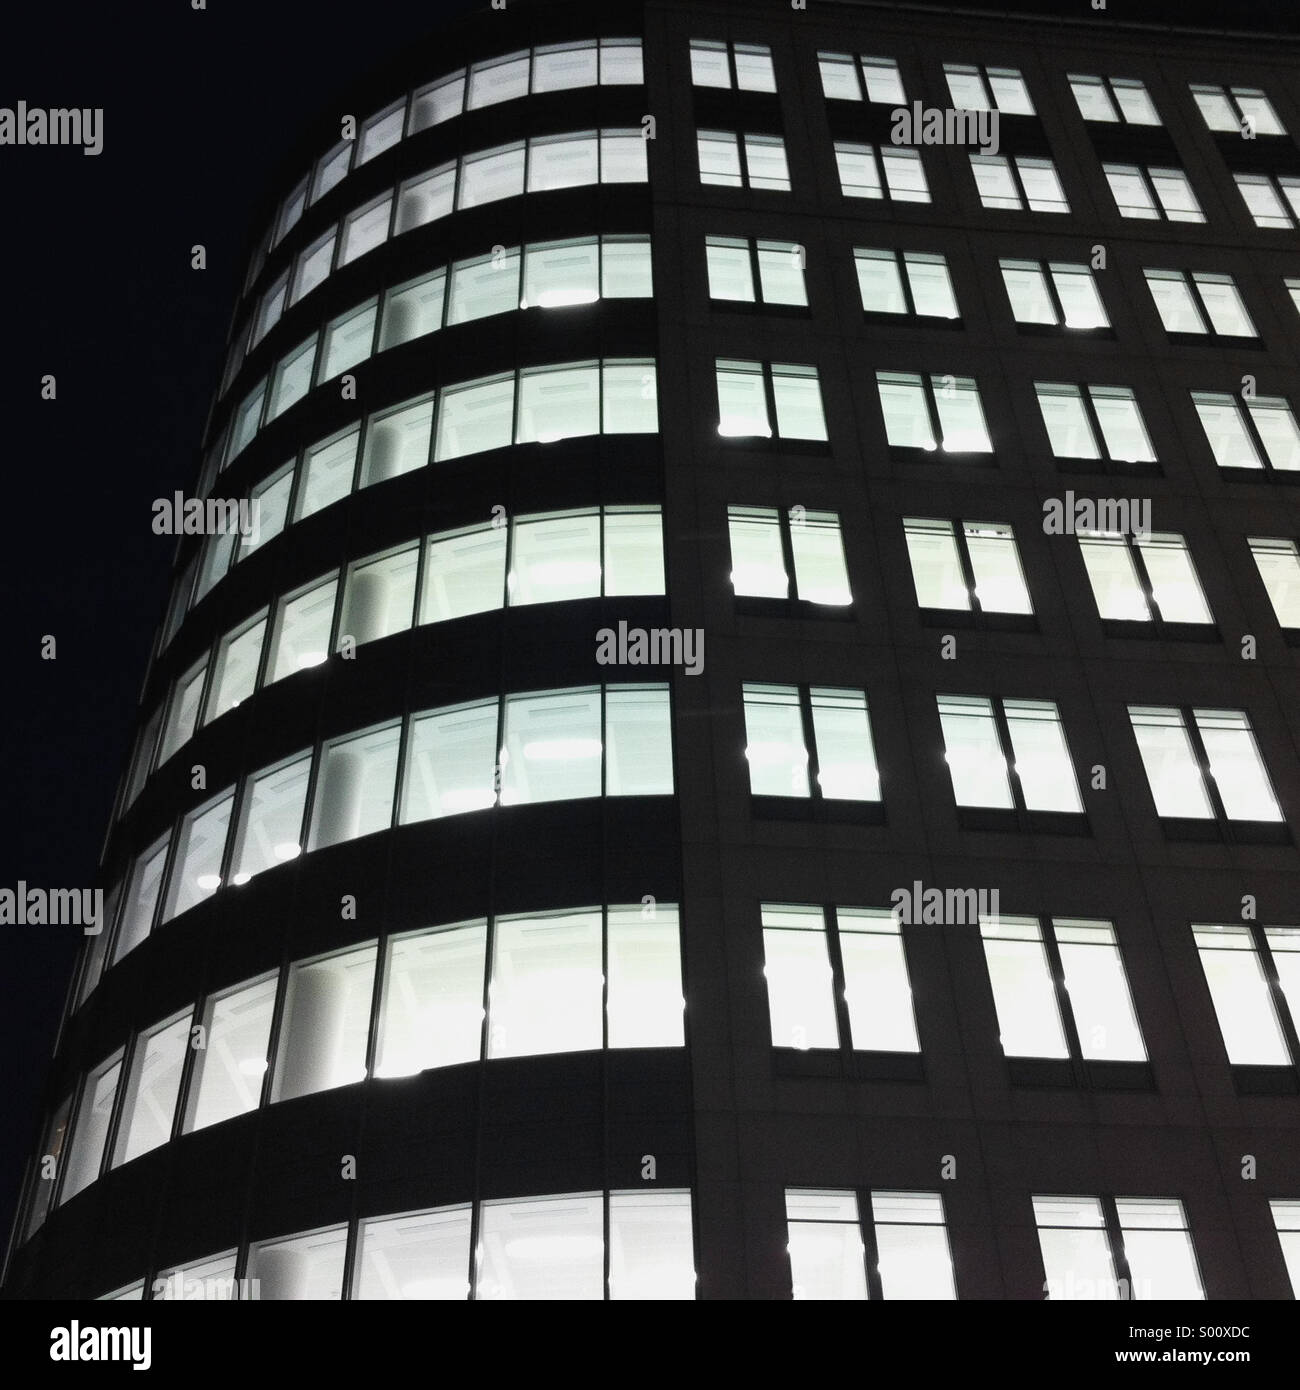 Lights on in an empty building in the city or London - Stock Image